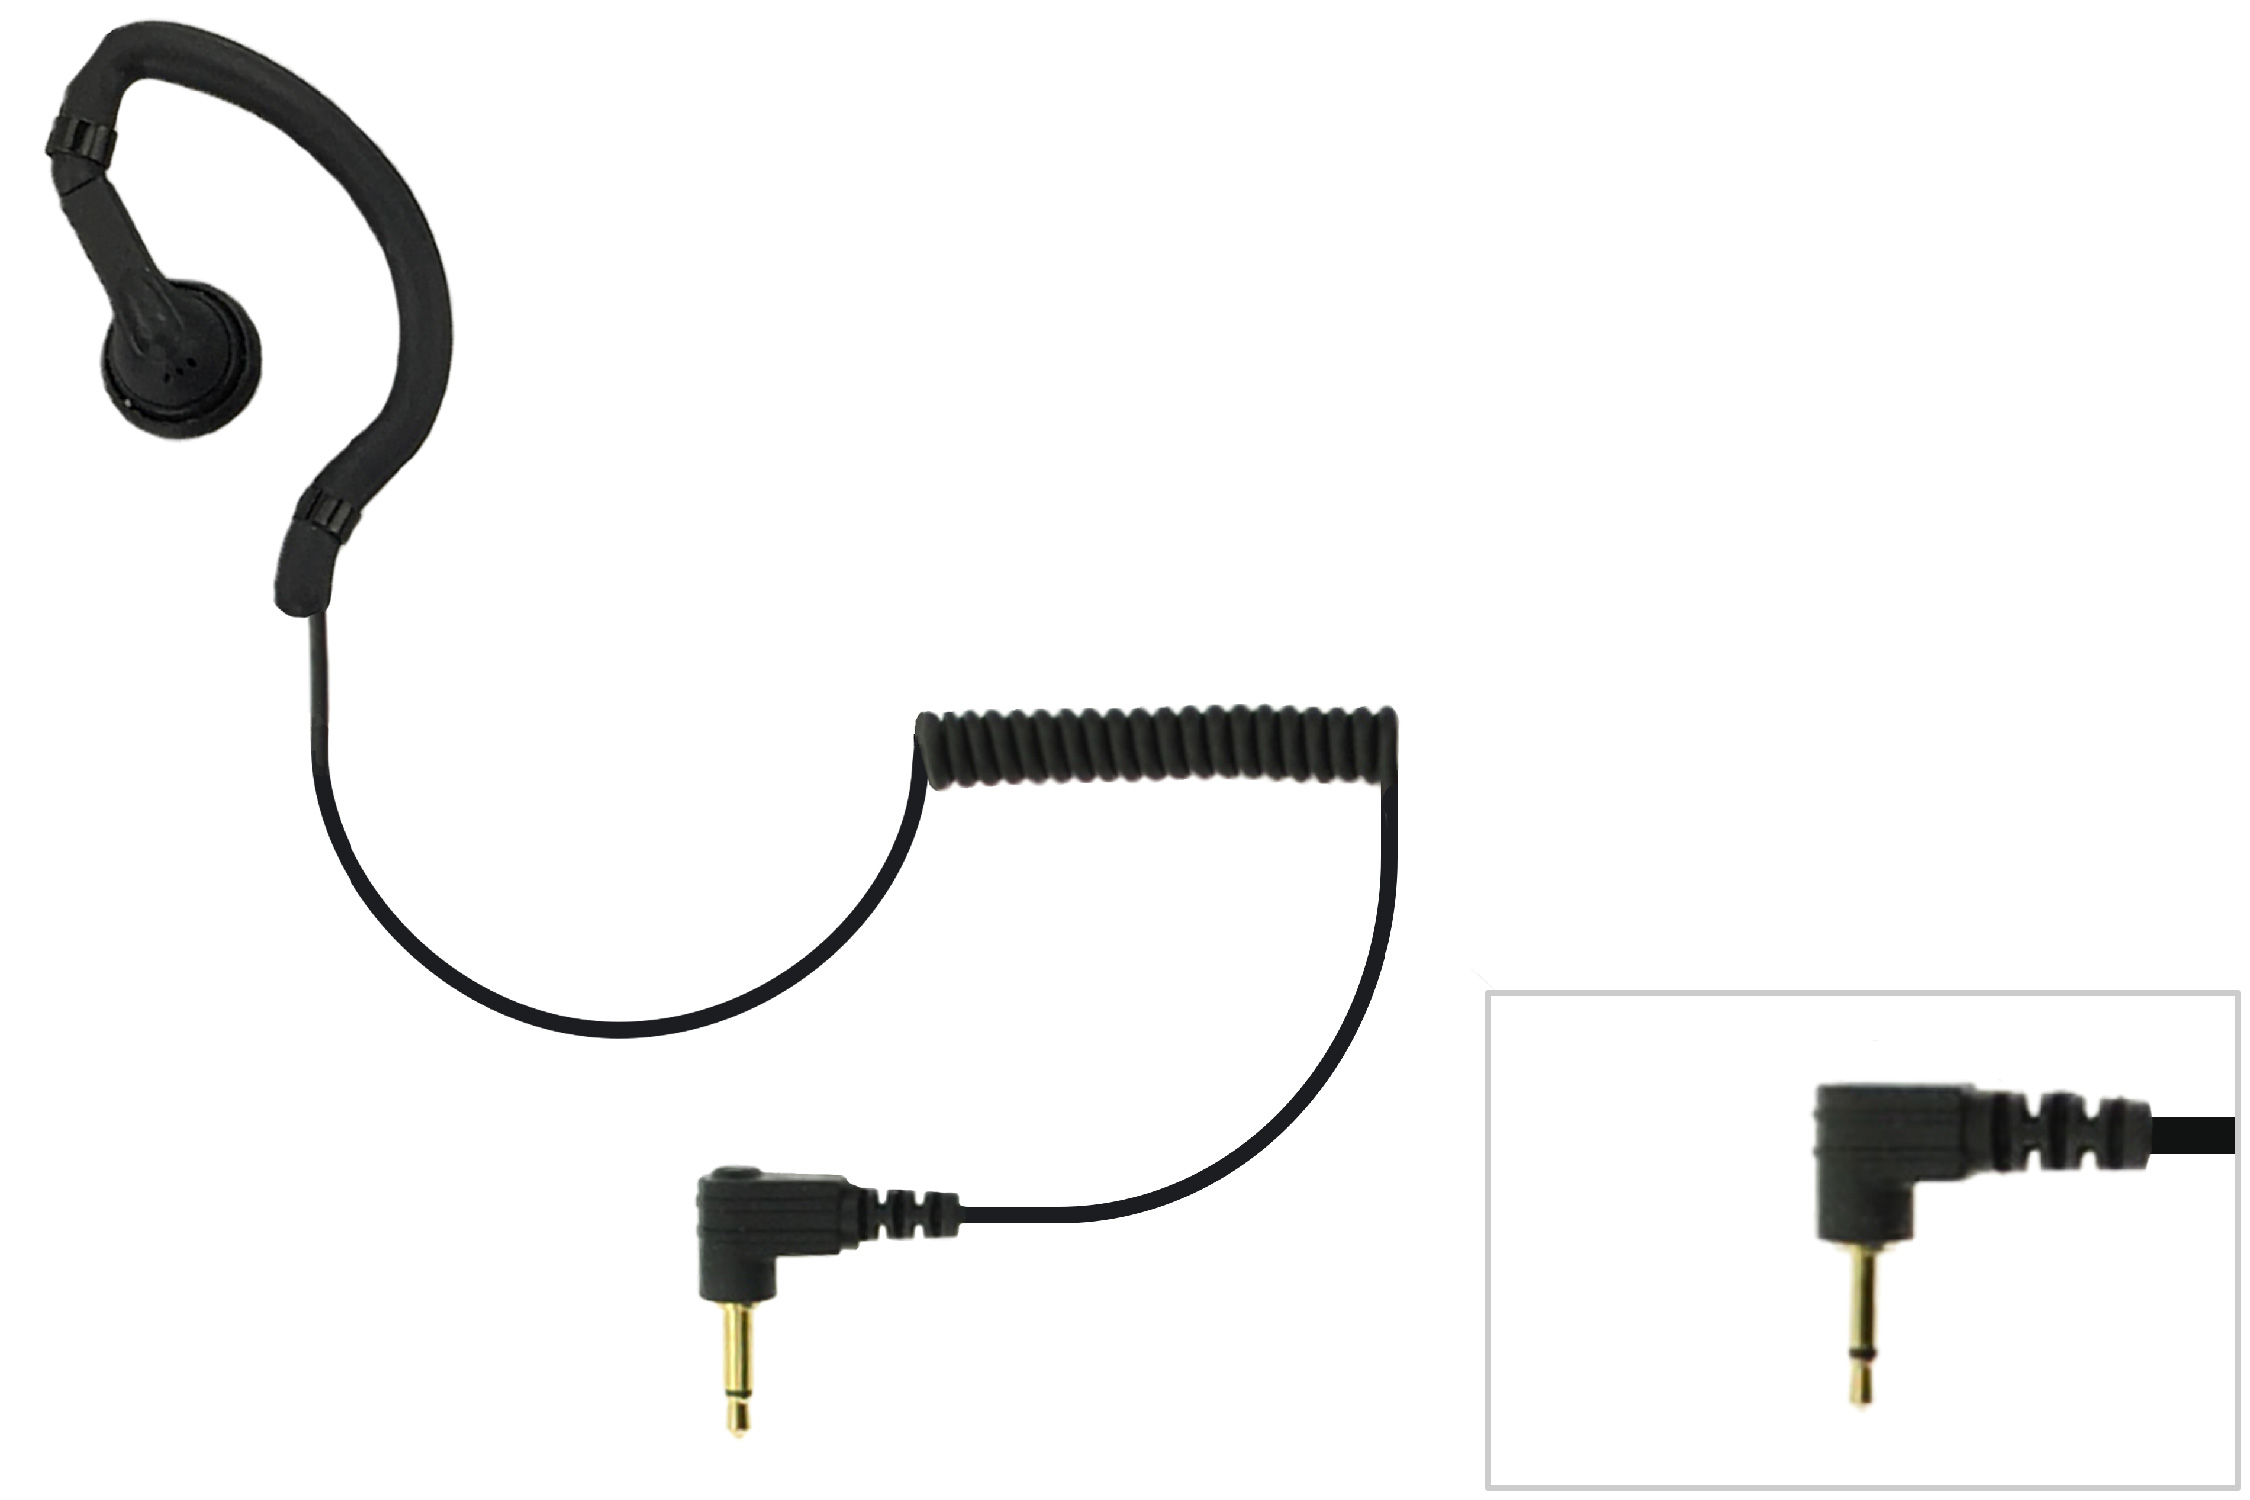 Earbud earpiece for remote speaker mic with 2.5mm plug